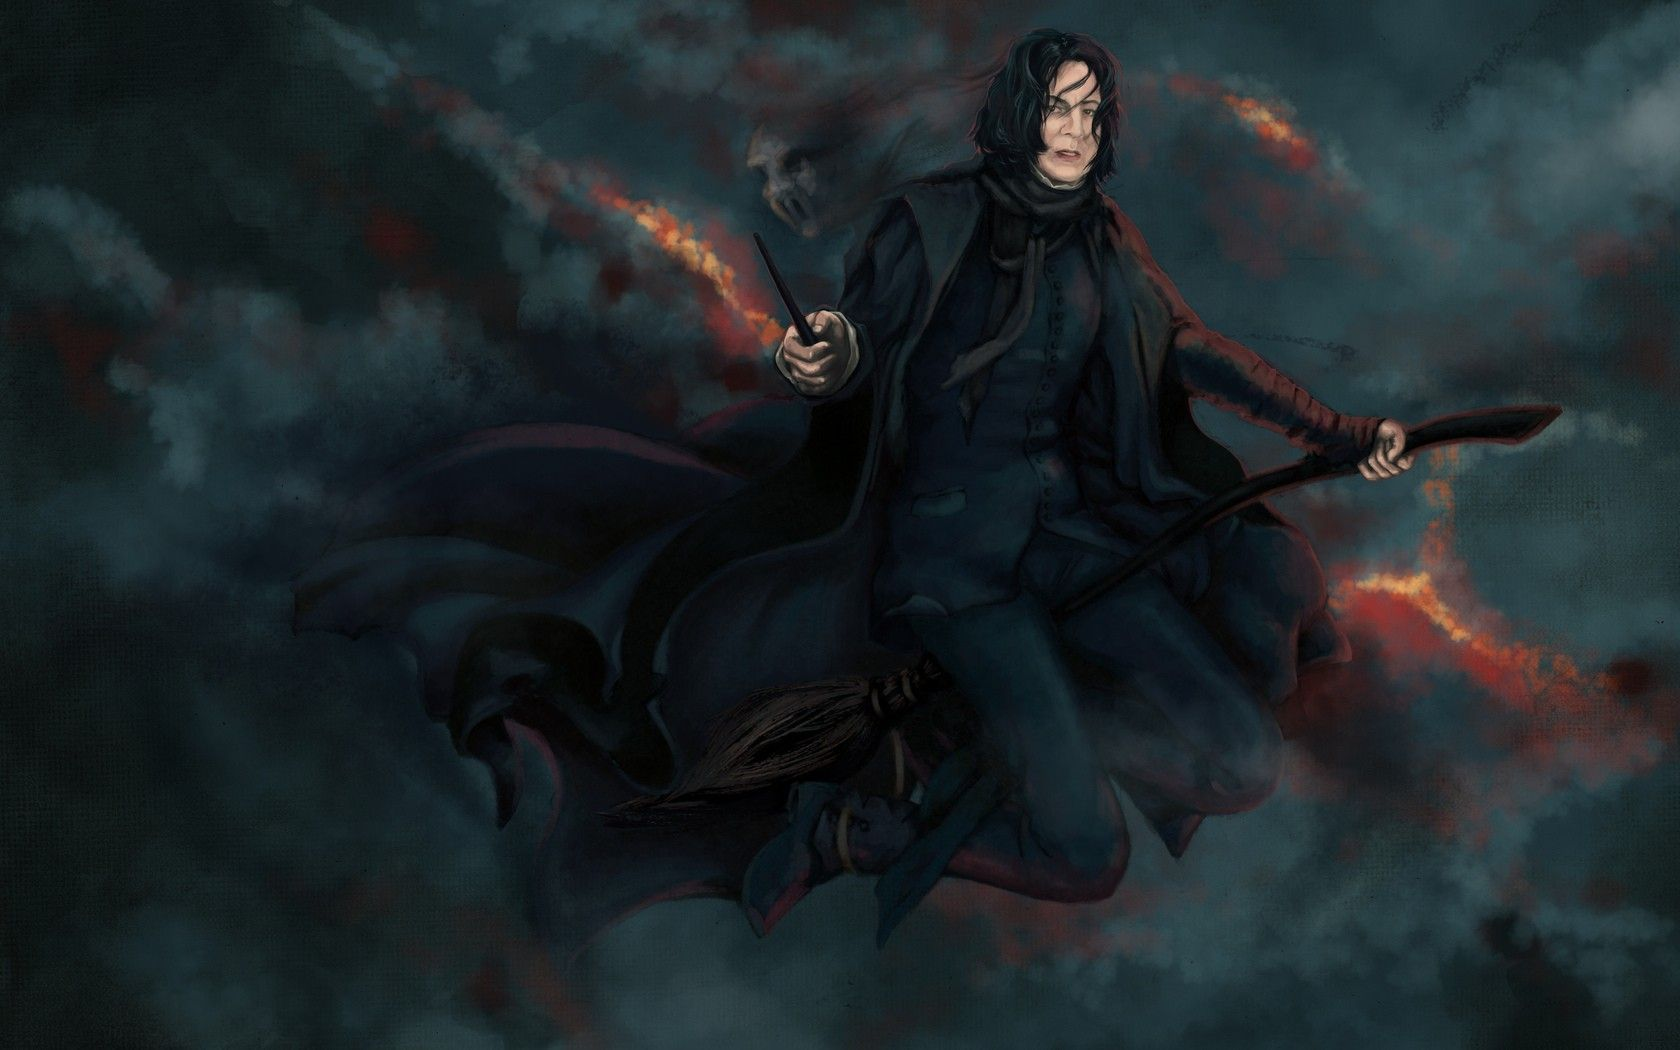 7 Quotes by Professor Snape that Changed Completely after